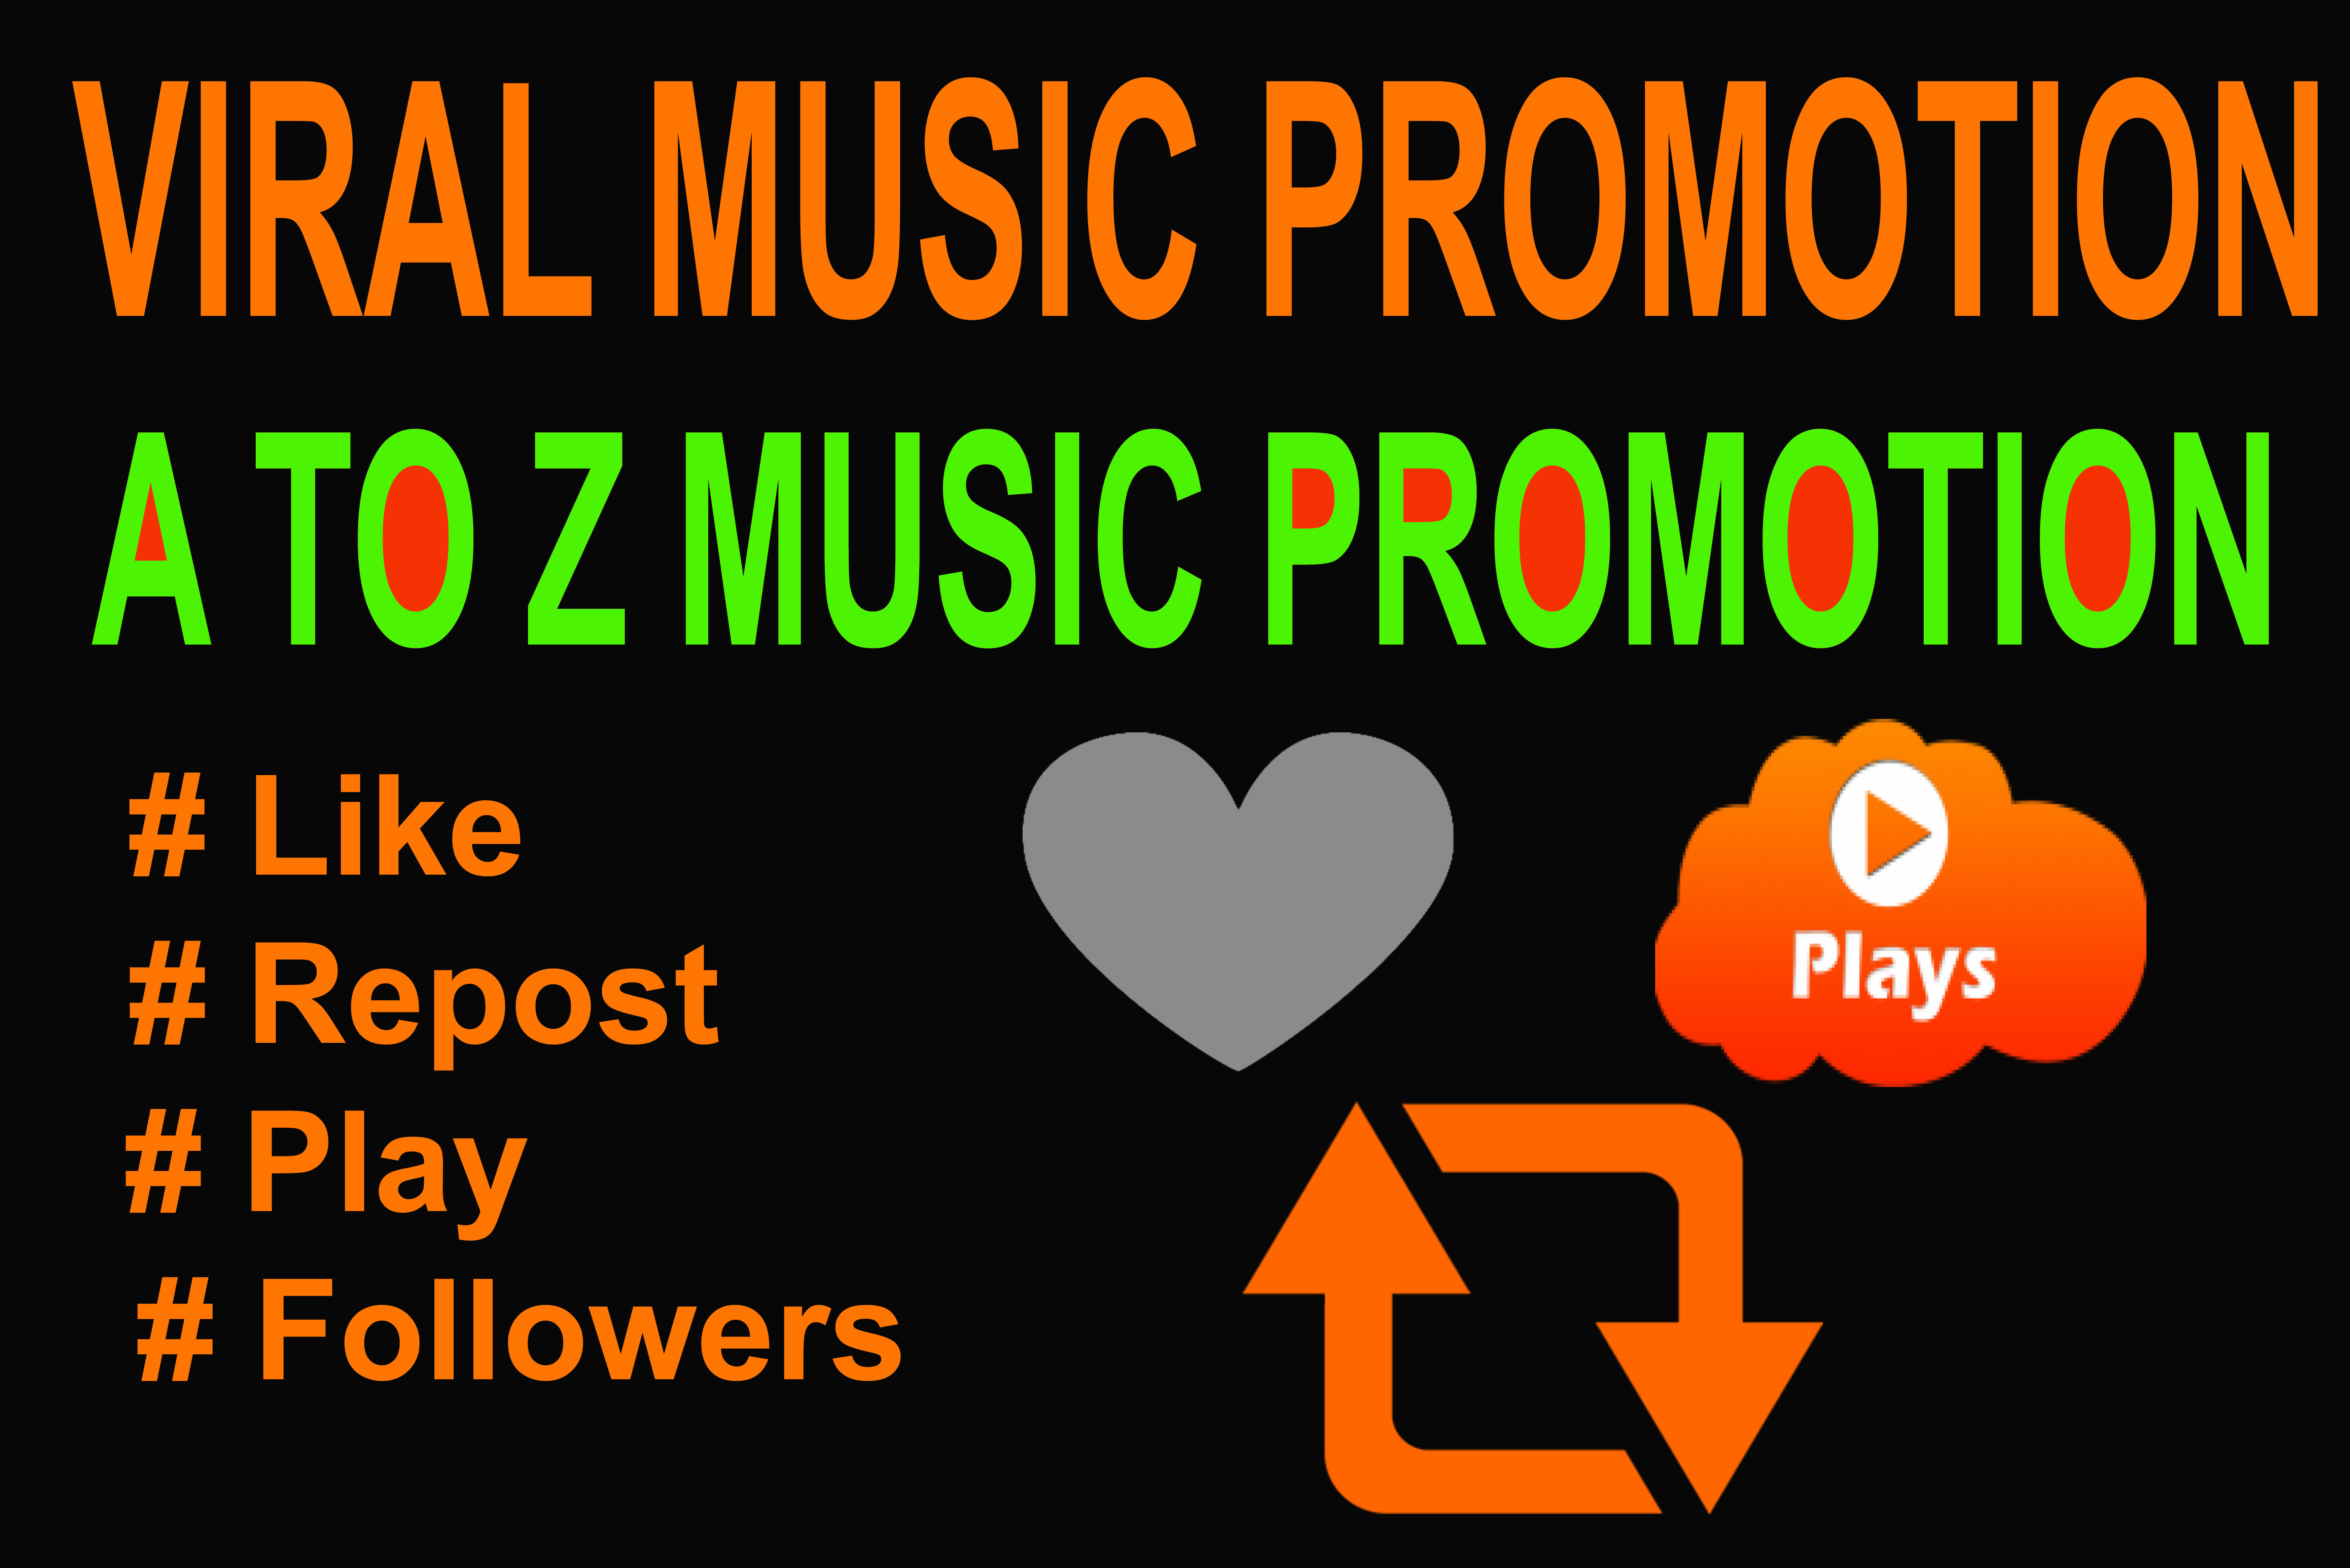 Music Promotion 225 F0ll0wers Or 225 Llke Or 225 Re-post Or 110 C0mments For Your Music Track